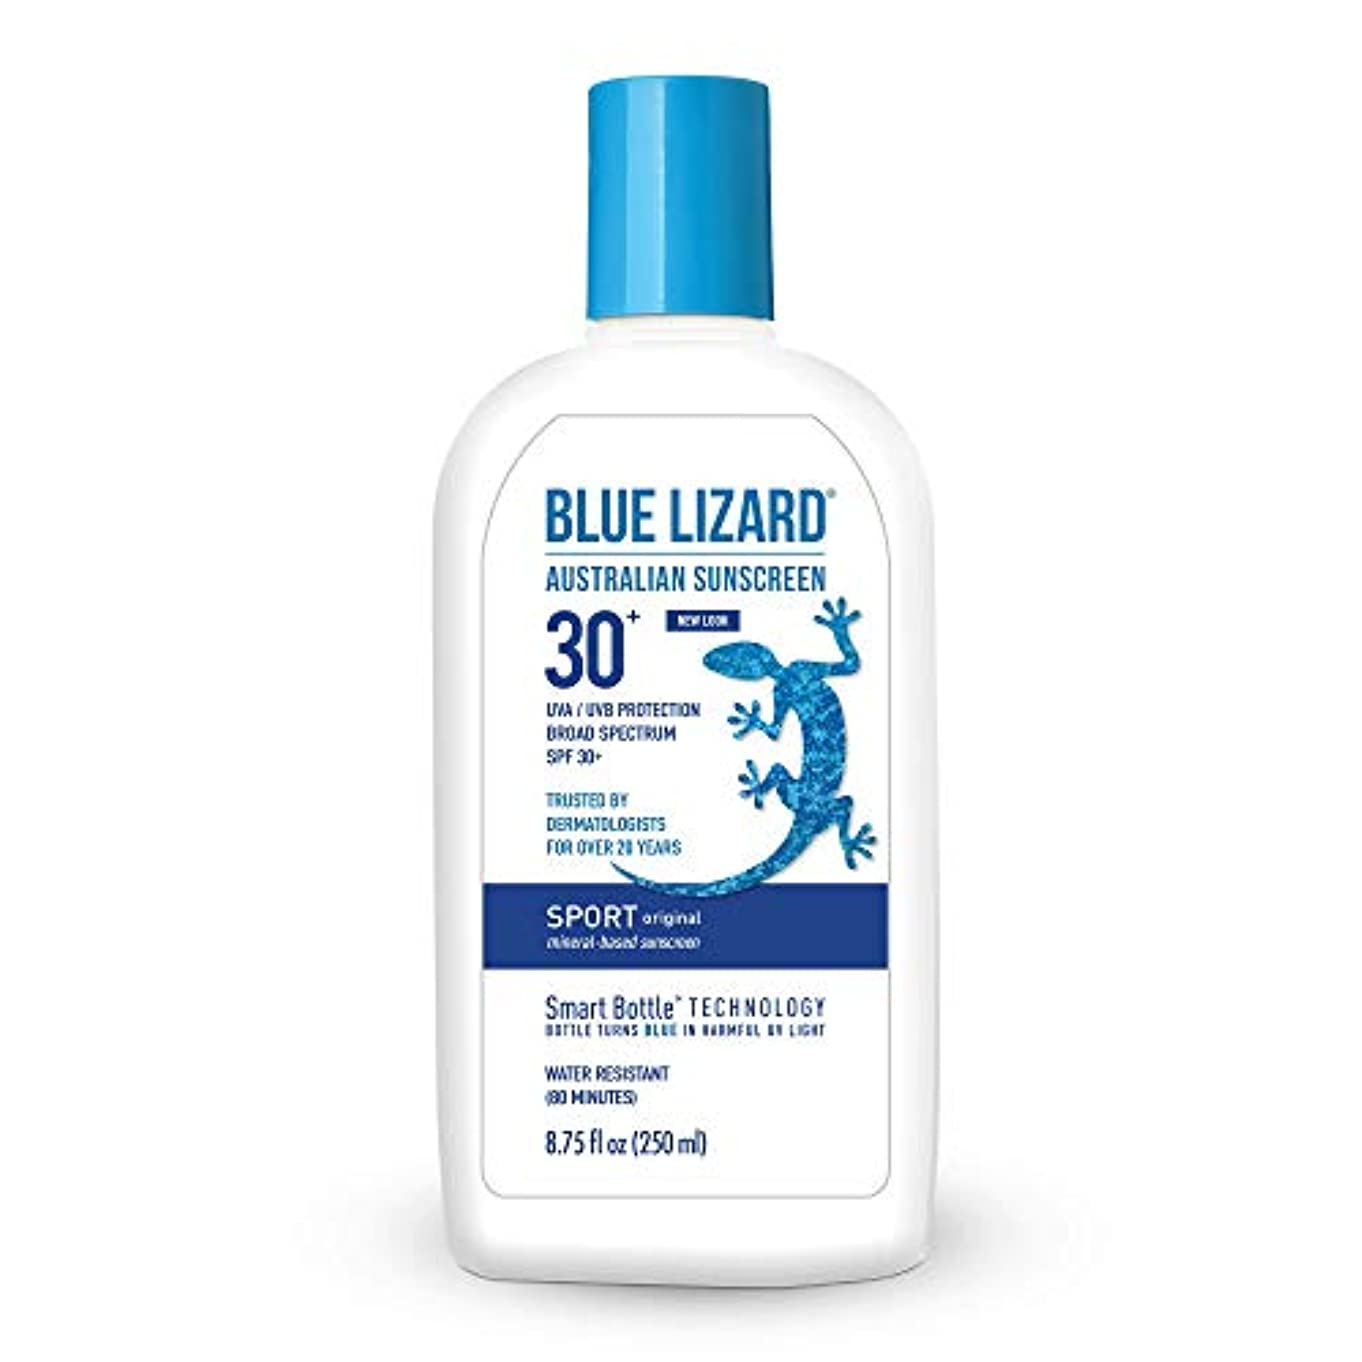 オーストラリア安全でないスリチンモイBlue Lizard Australian SUNSCREEN SPF 30+, Sport SPF 30+ (8.75 oz) by Blue Lizard